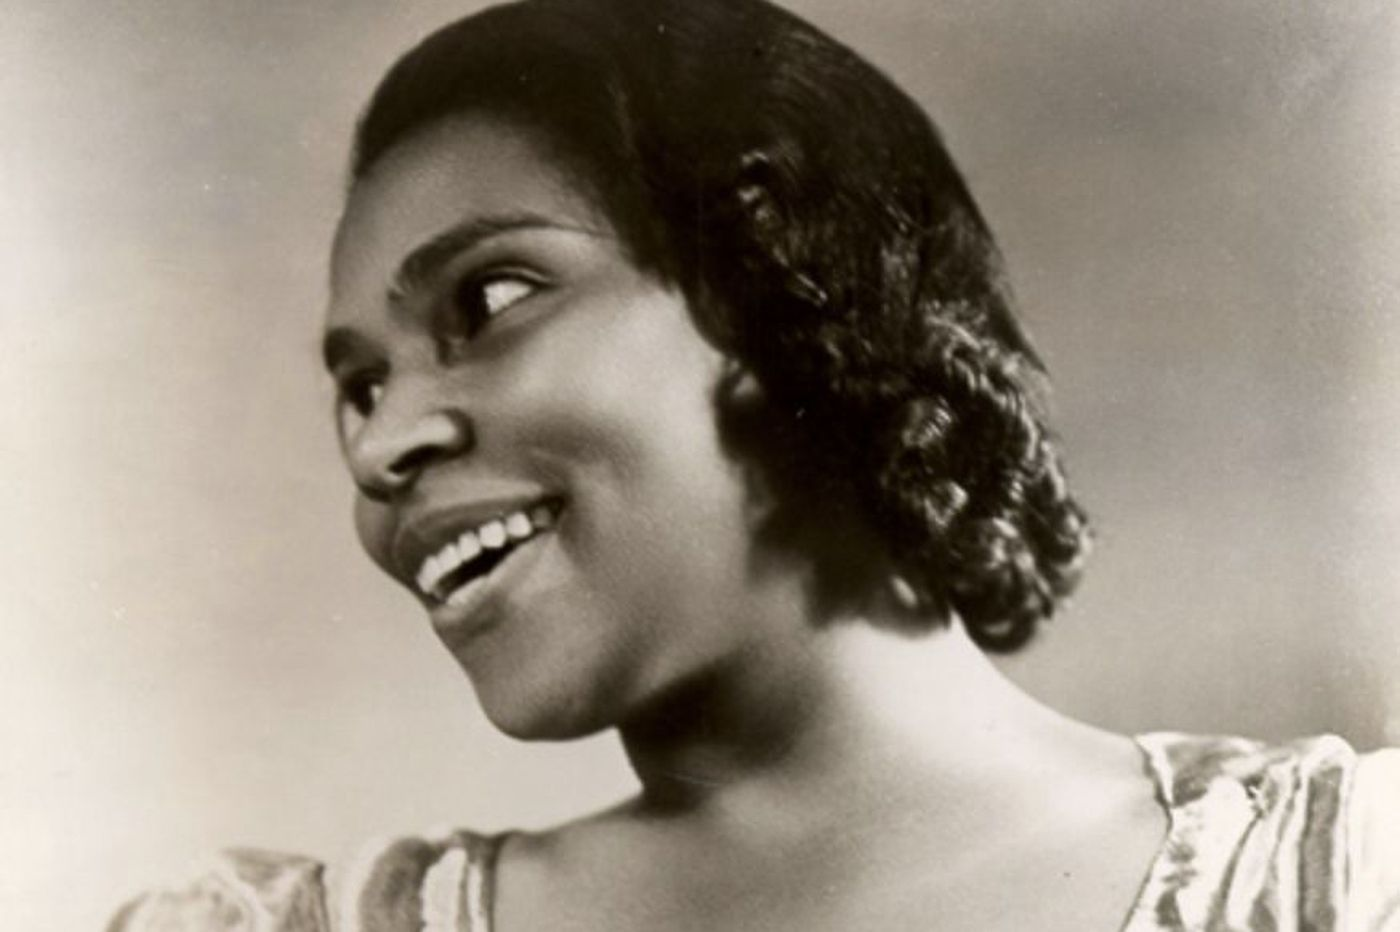 'Oh, my gosh! Why didn't I know about this growing up?' Maker of new Marian Anderson film brings it home to Philly for a world premiere